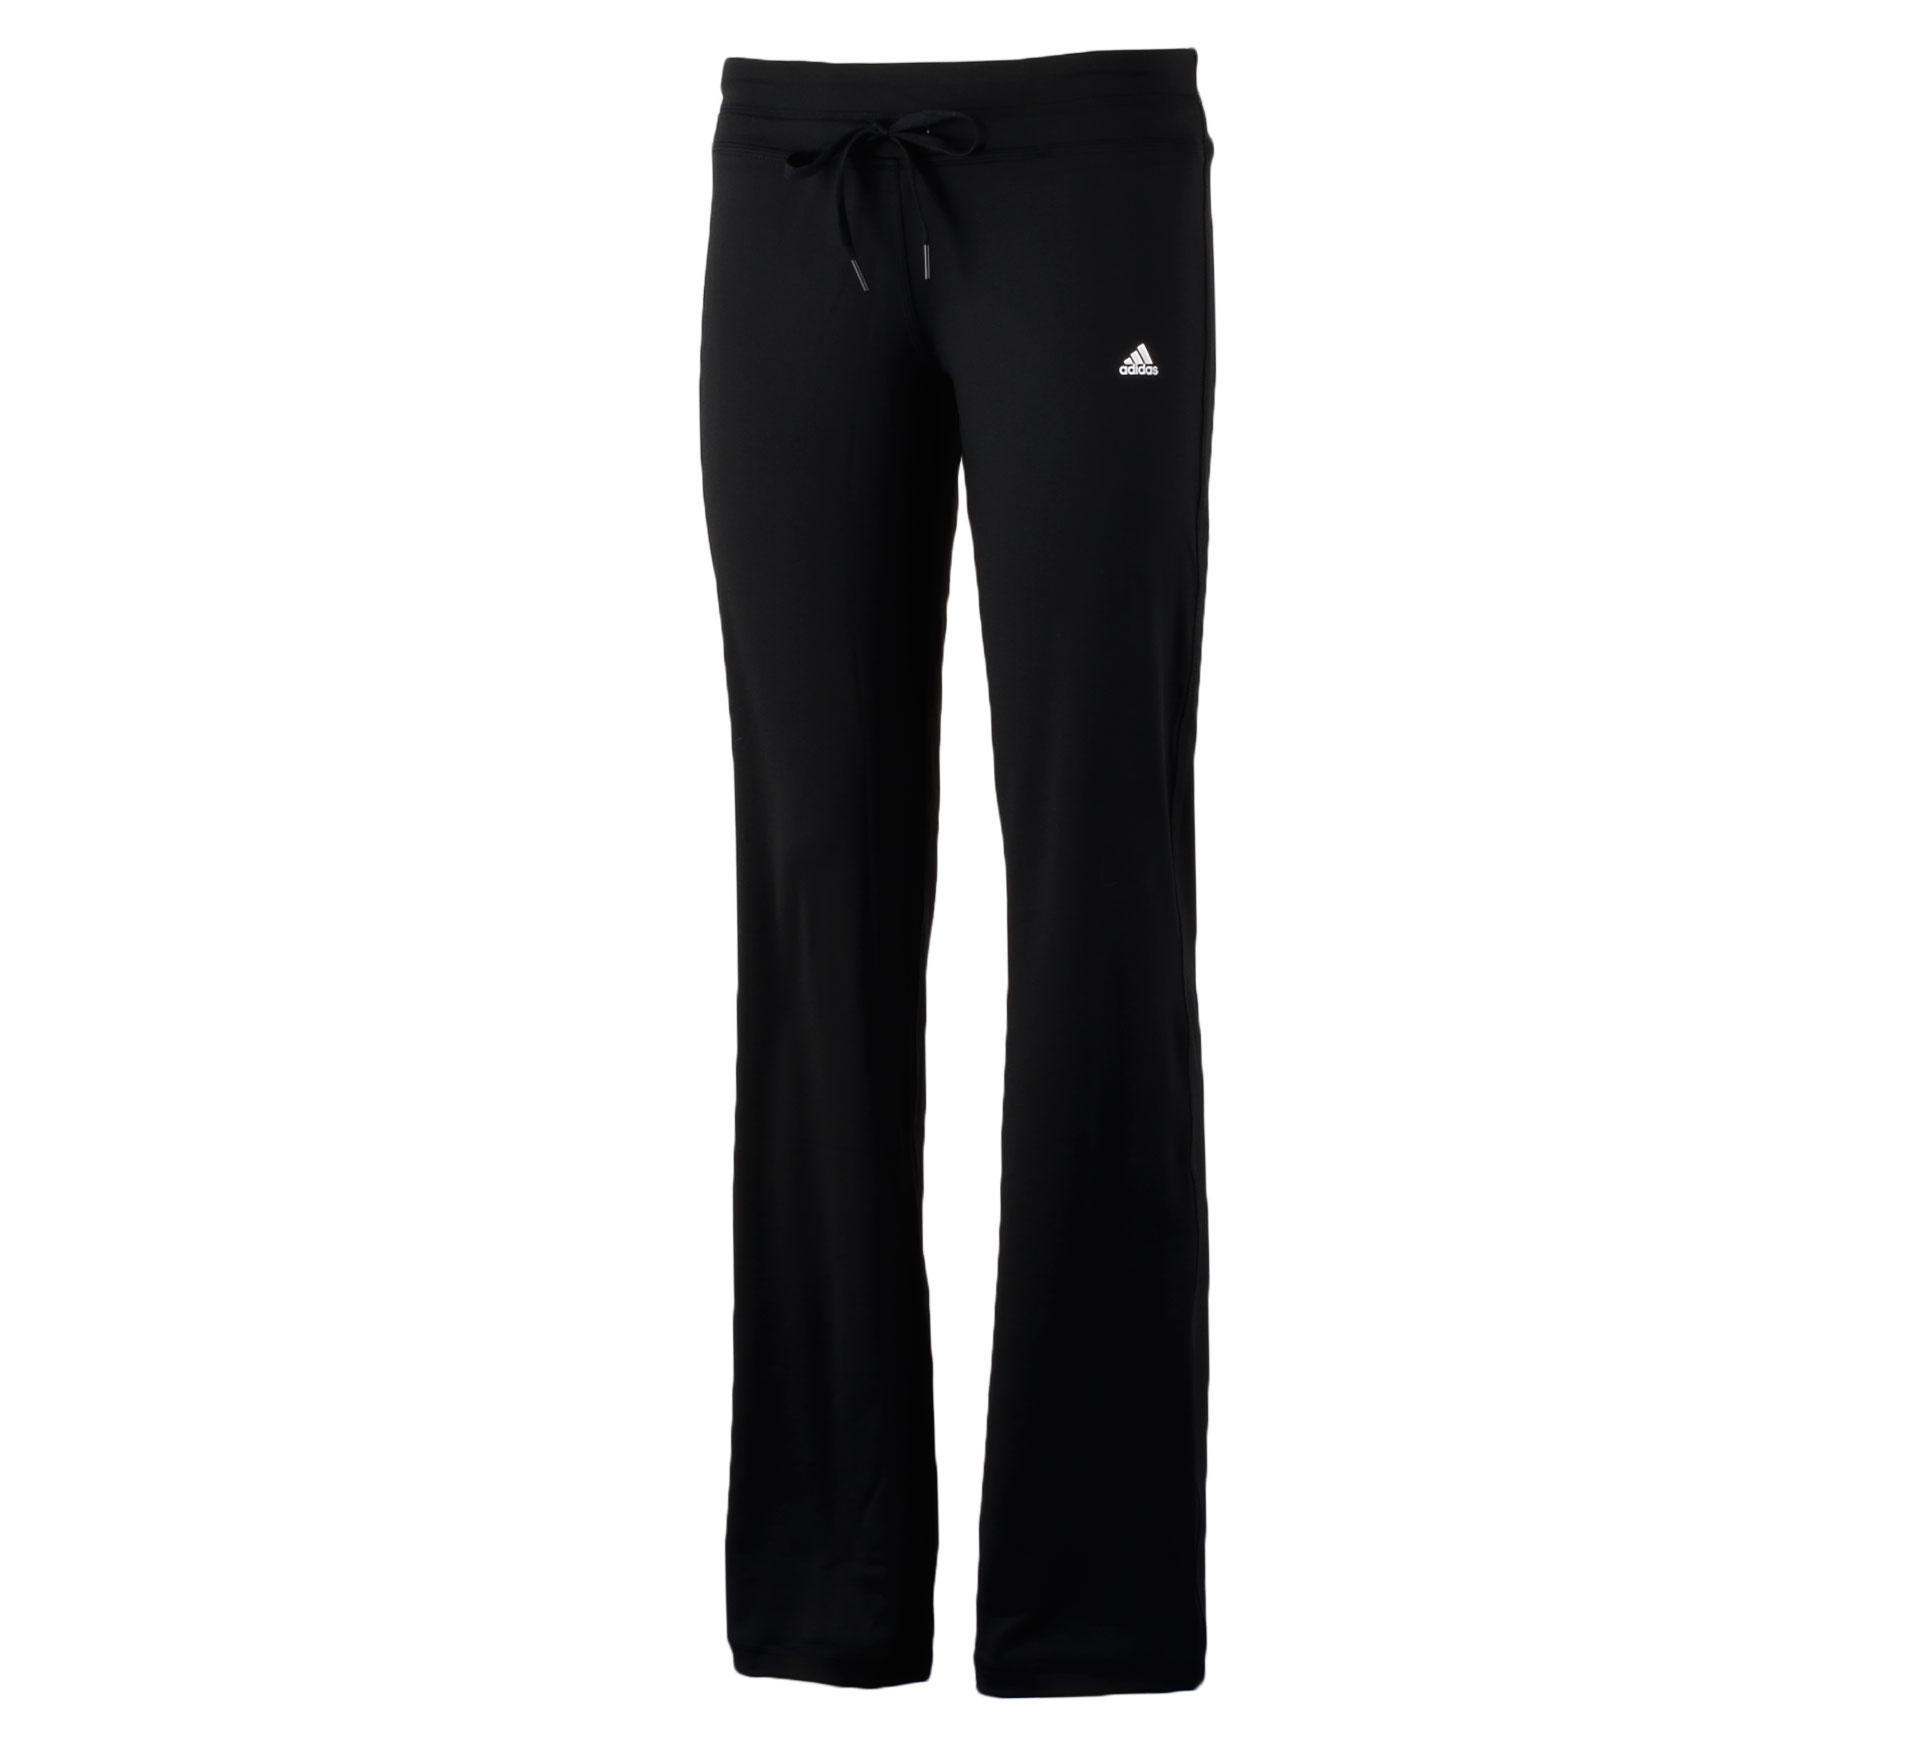 Adidas Gym Basic Stretch Broek Dames zwart